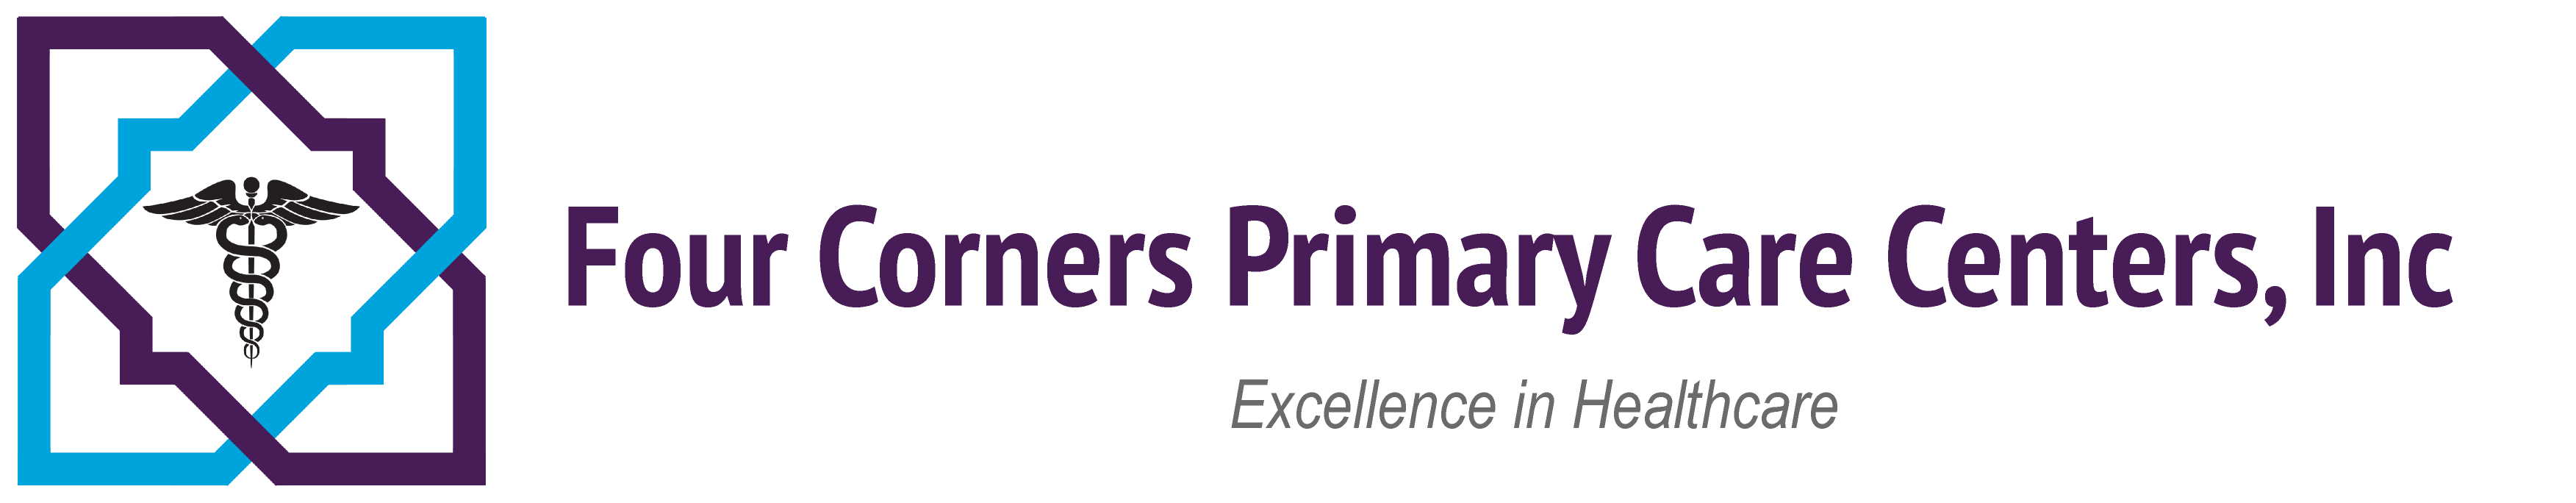 Four Corners Primary Care Centers, Inc.